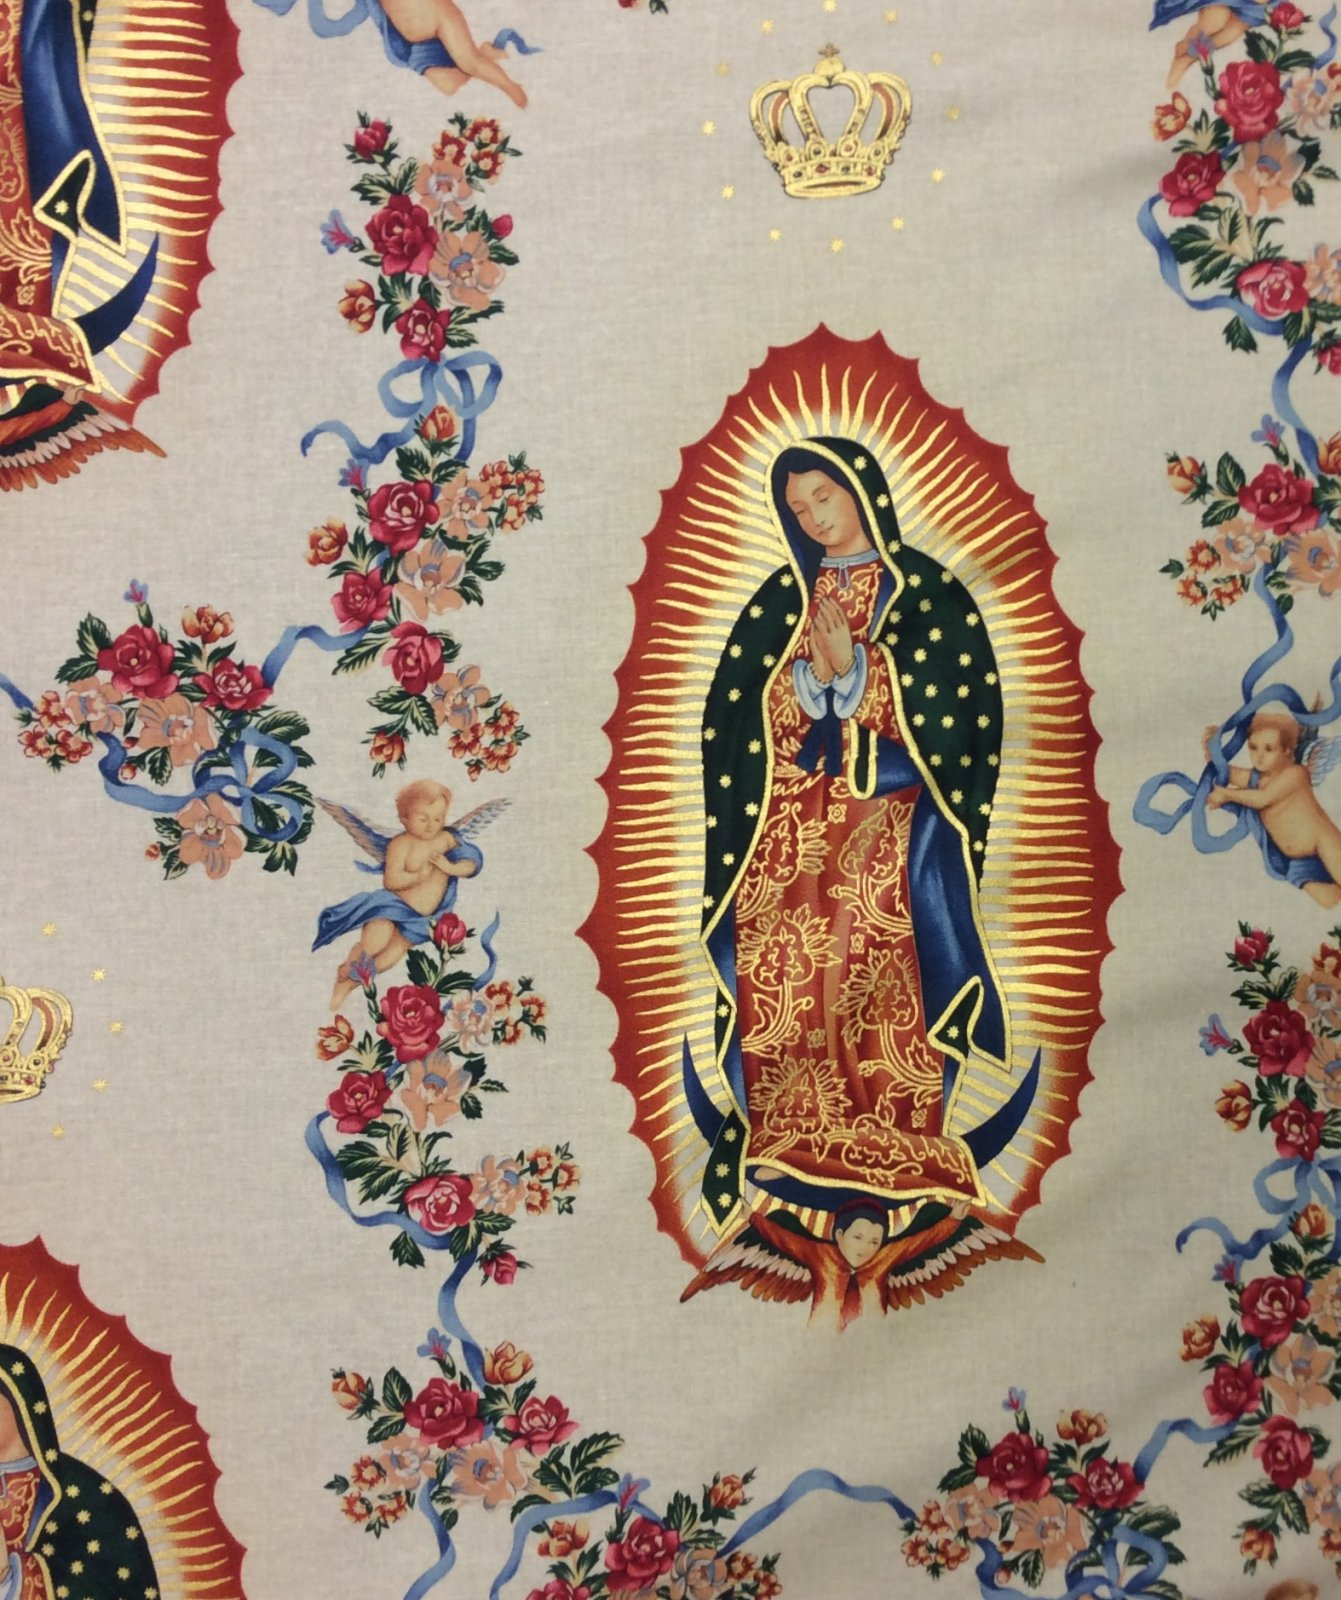 Our Lady of Guadalupe Virgin Mary Mexico Latin Saint 100% Cotton Quilt Fabric AH251